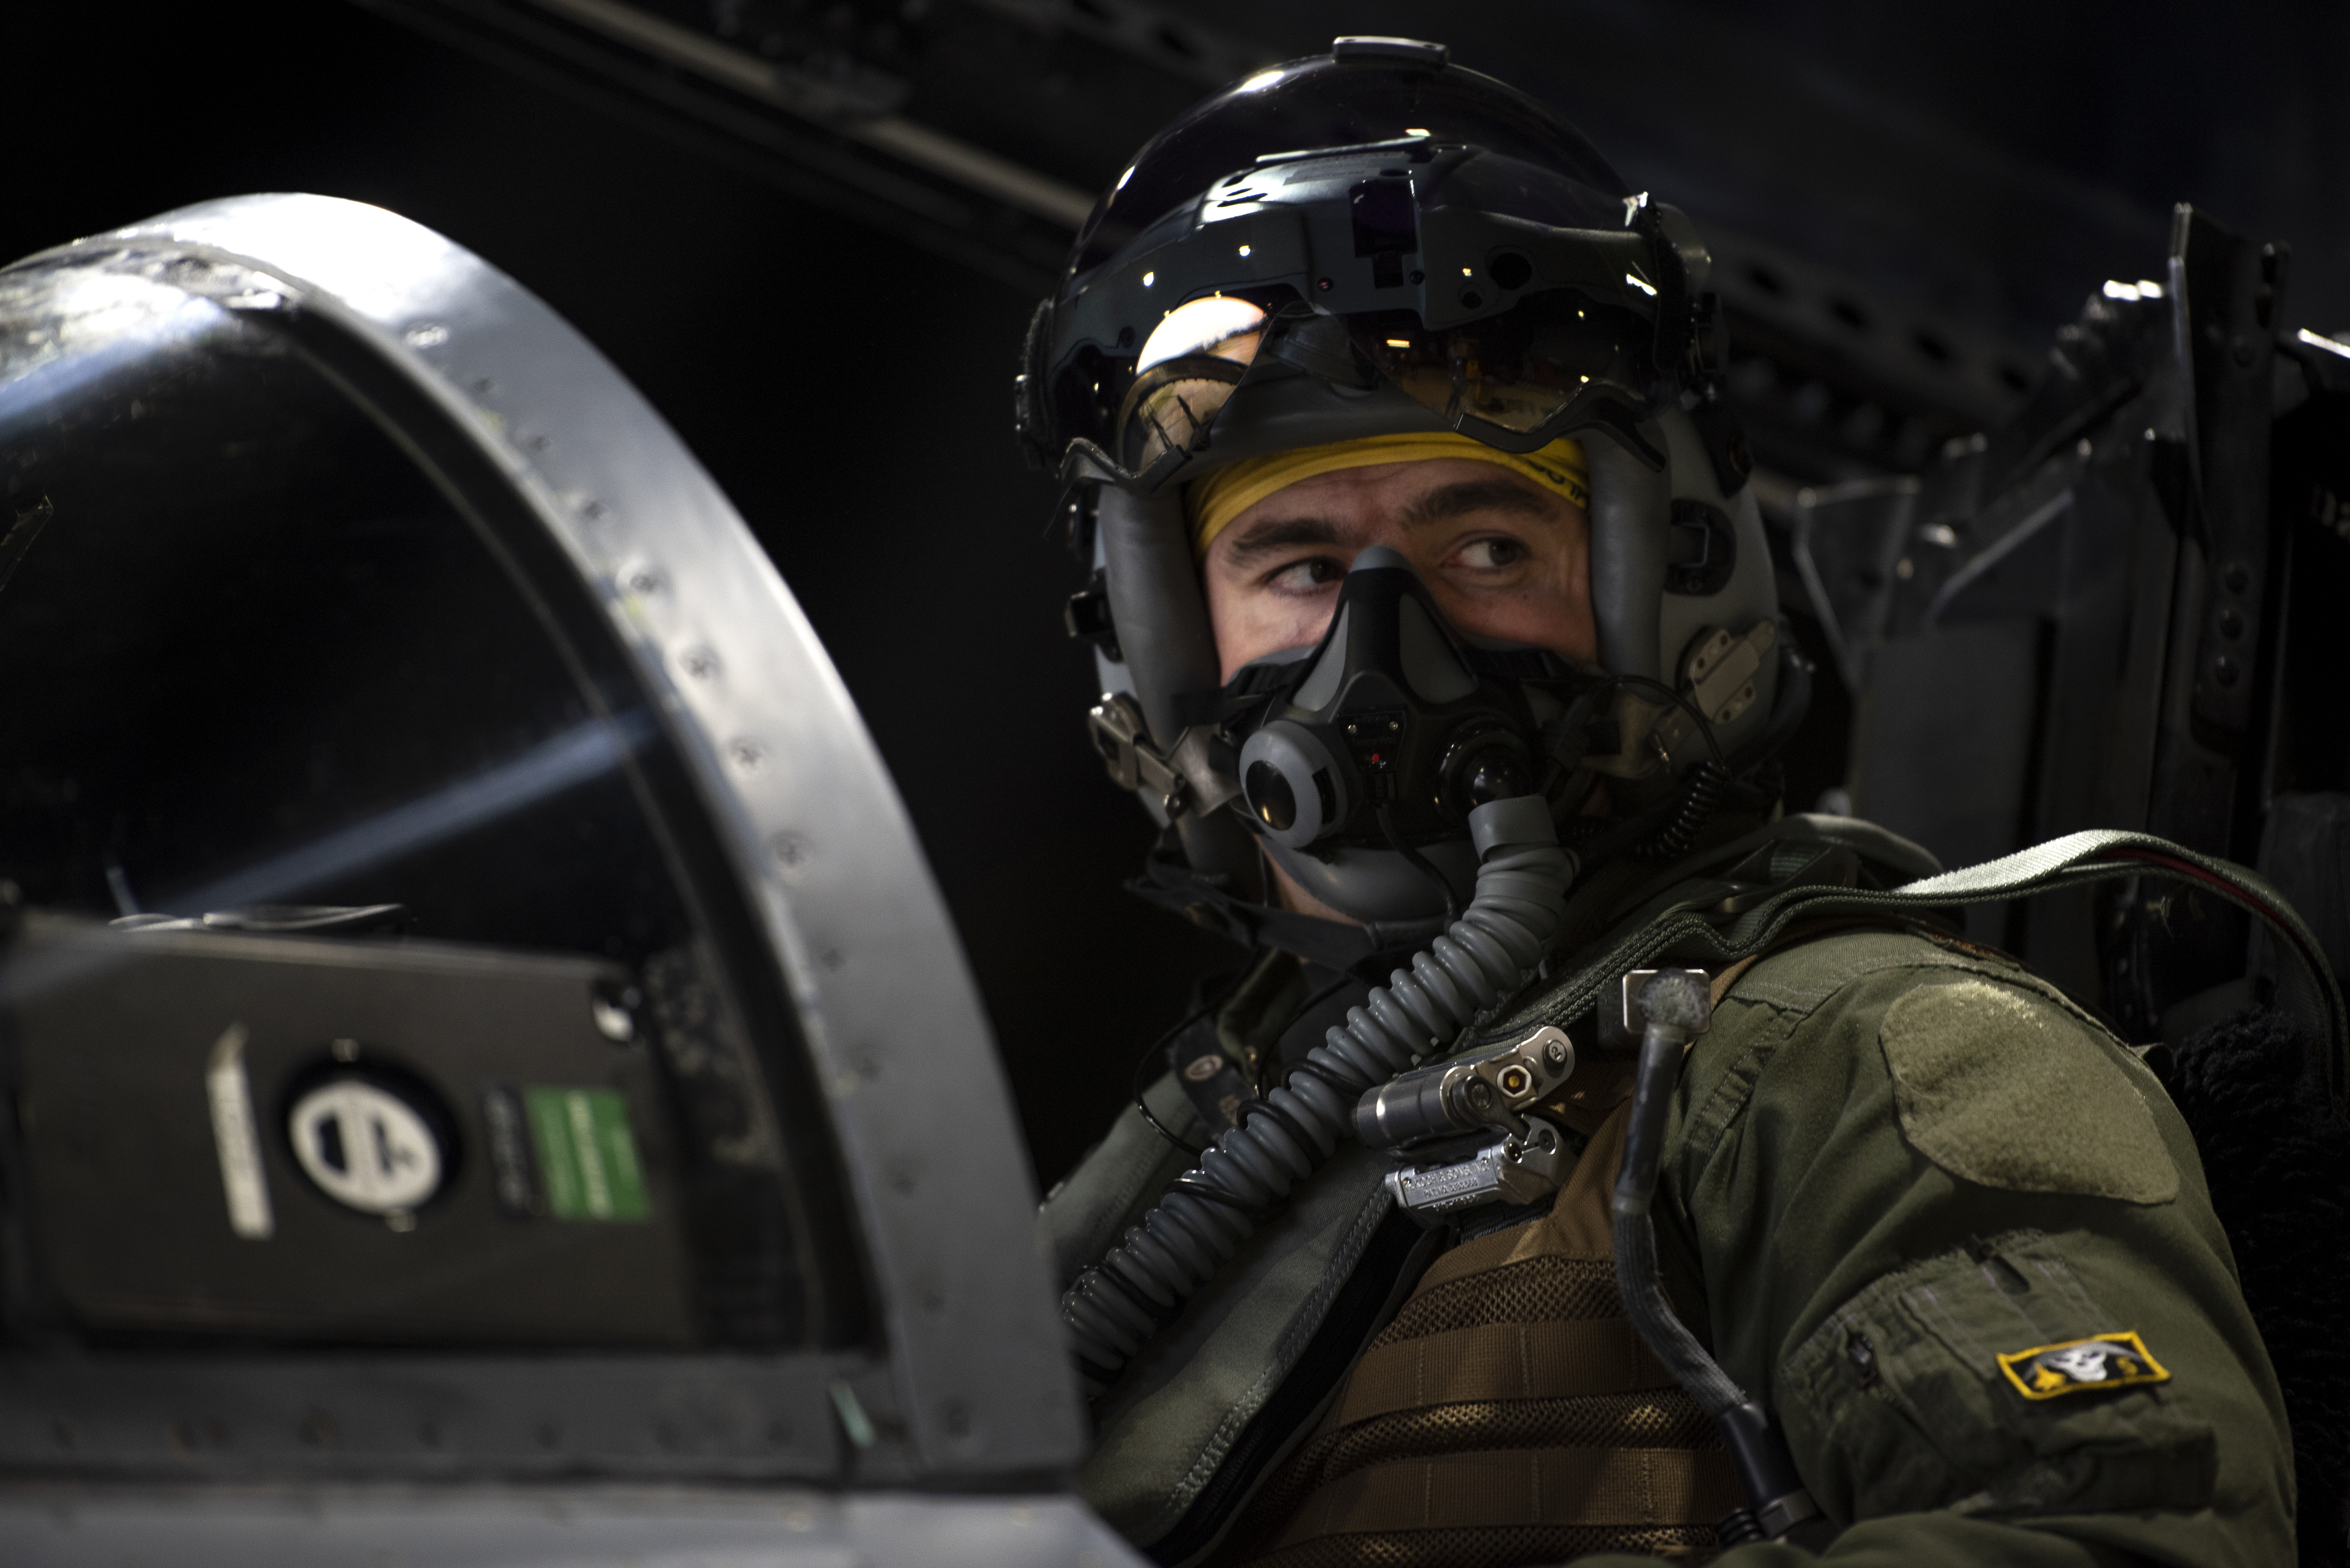 Maj. Andrew Smith, an F-15C Eagle pilot with the 48th Fighter Wing, conducts preflight checks in 2020 before taking off at Royal Air Force Lakenheath, England, during Exercise Point Blank 20-3. (Airman 1st Class Jessi Monte/U.S. Air Force)